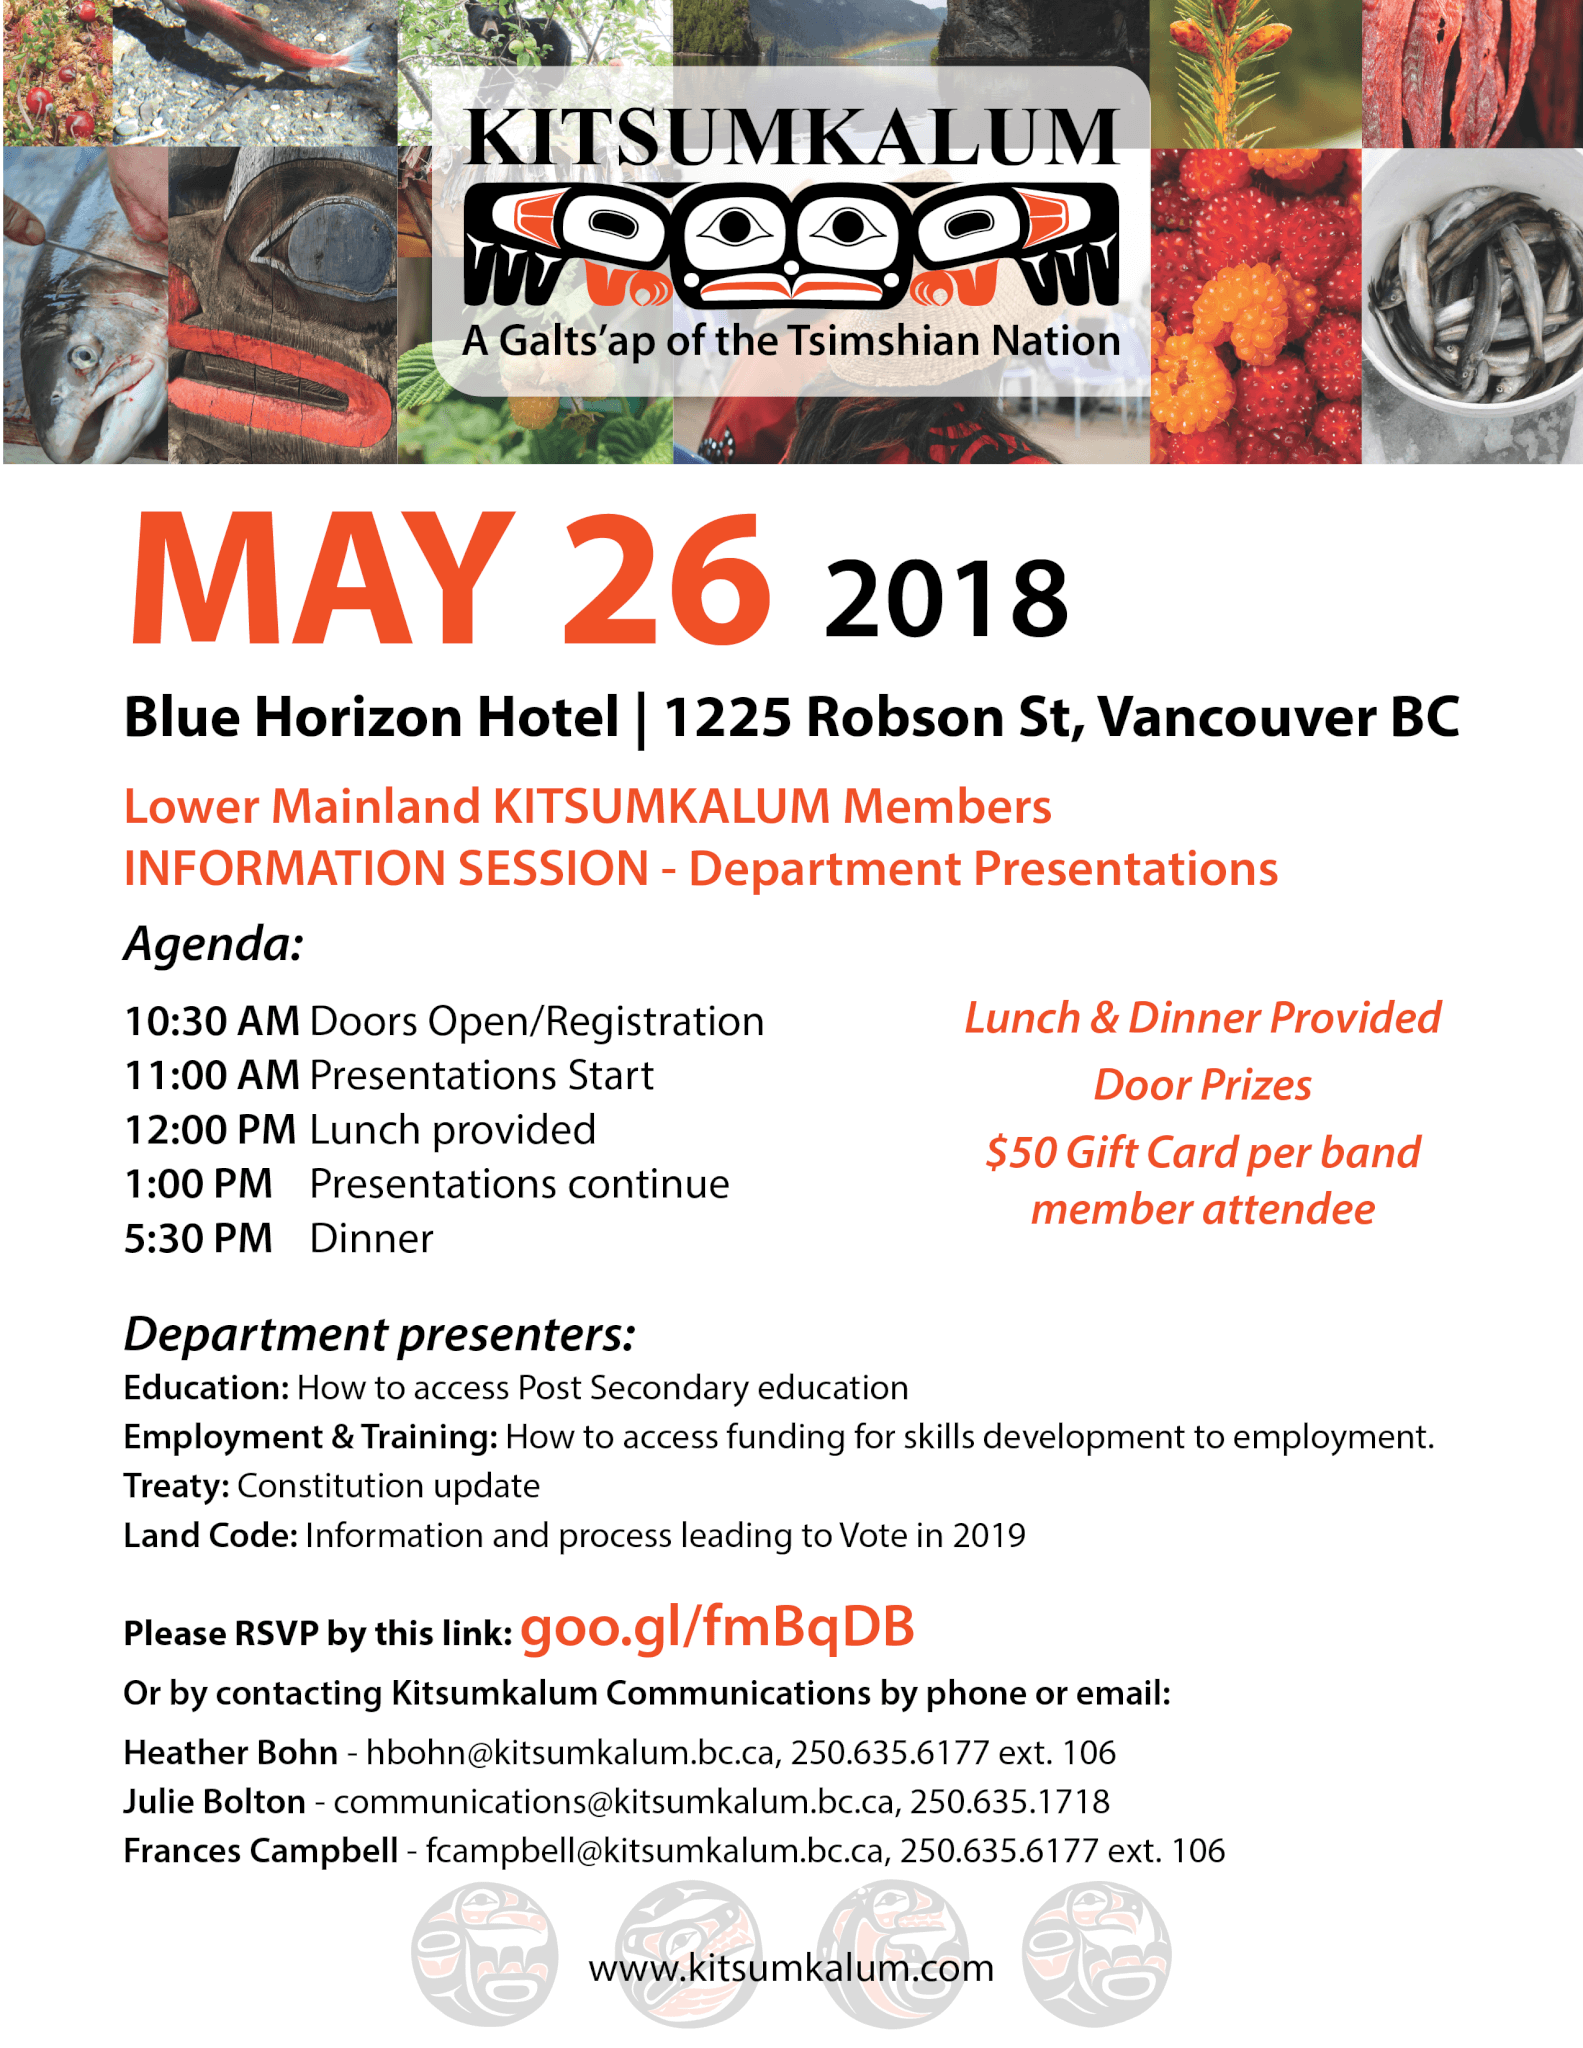 MAY 26th Kitsumkalum Info. Session for Lower Mainland Members